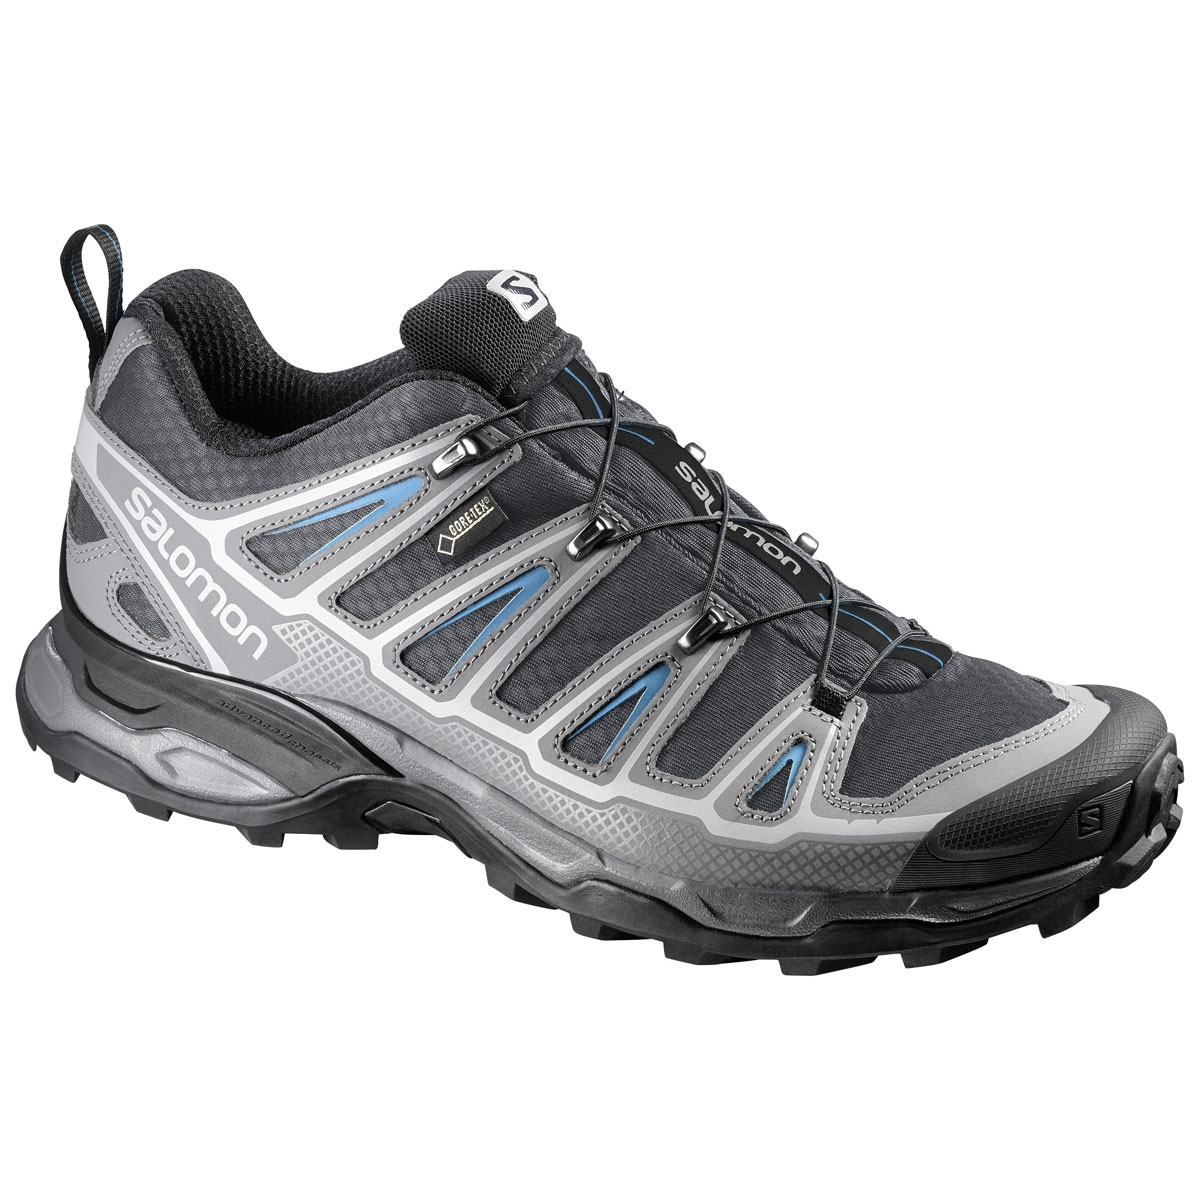 71a9ba8de437 Image of Salomon X Ultra 2 GTX Walking Shoes (Men s) - Detroit   Autobahn